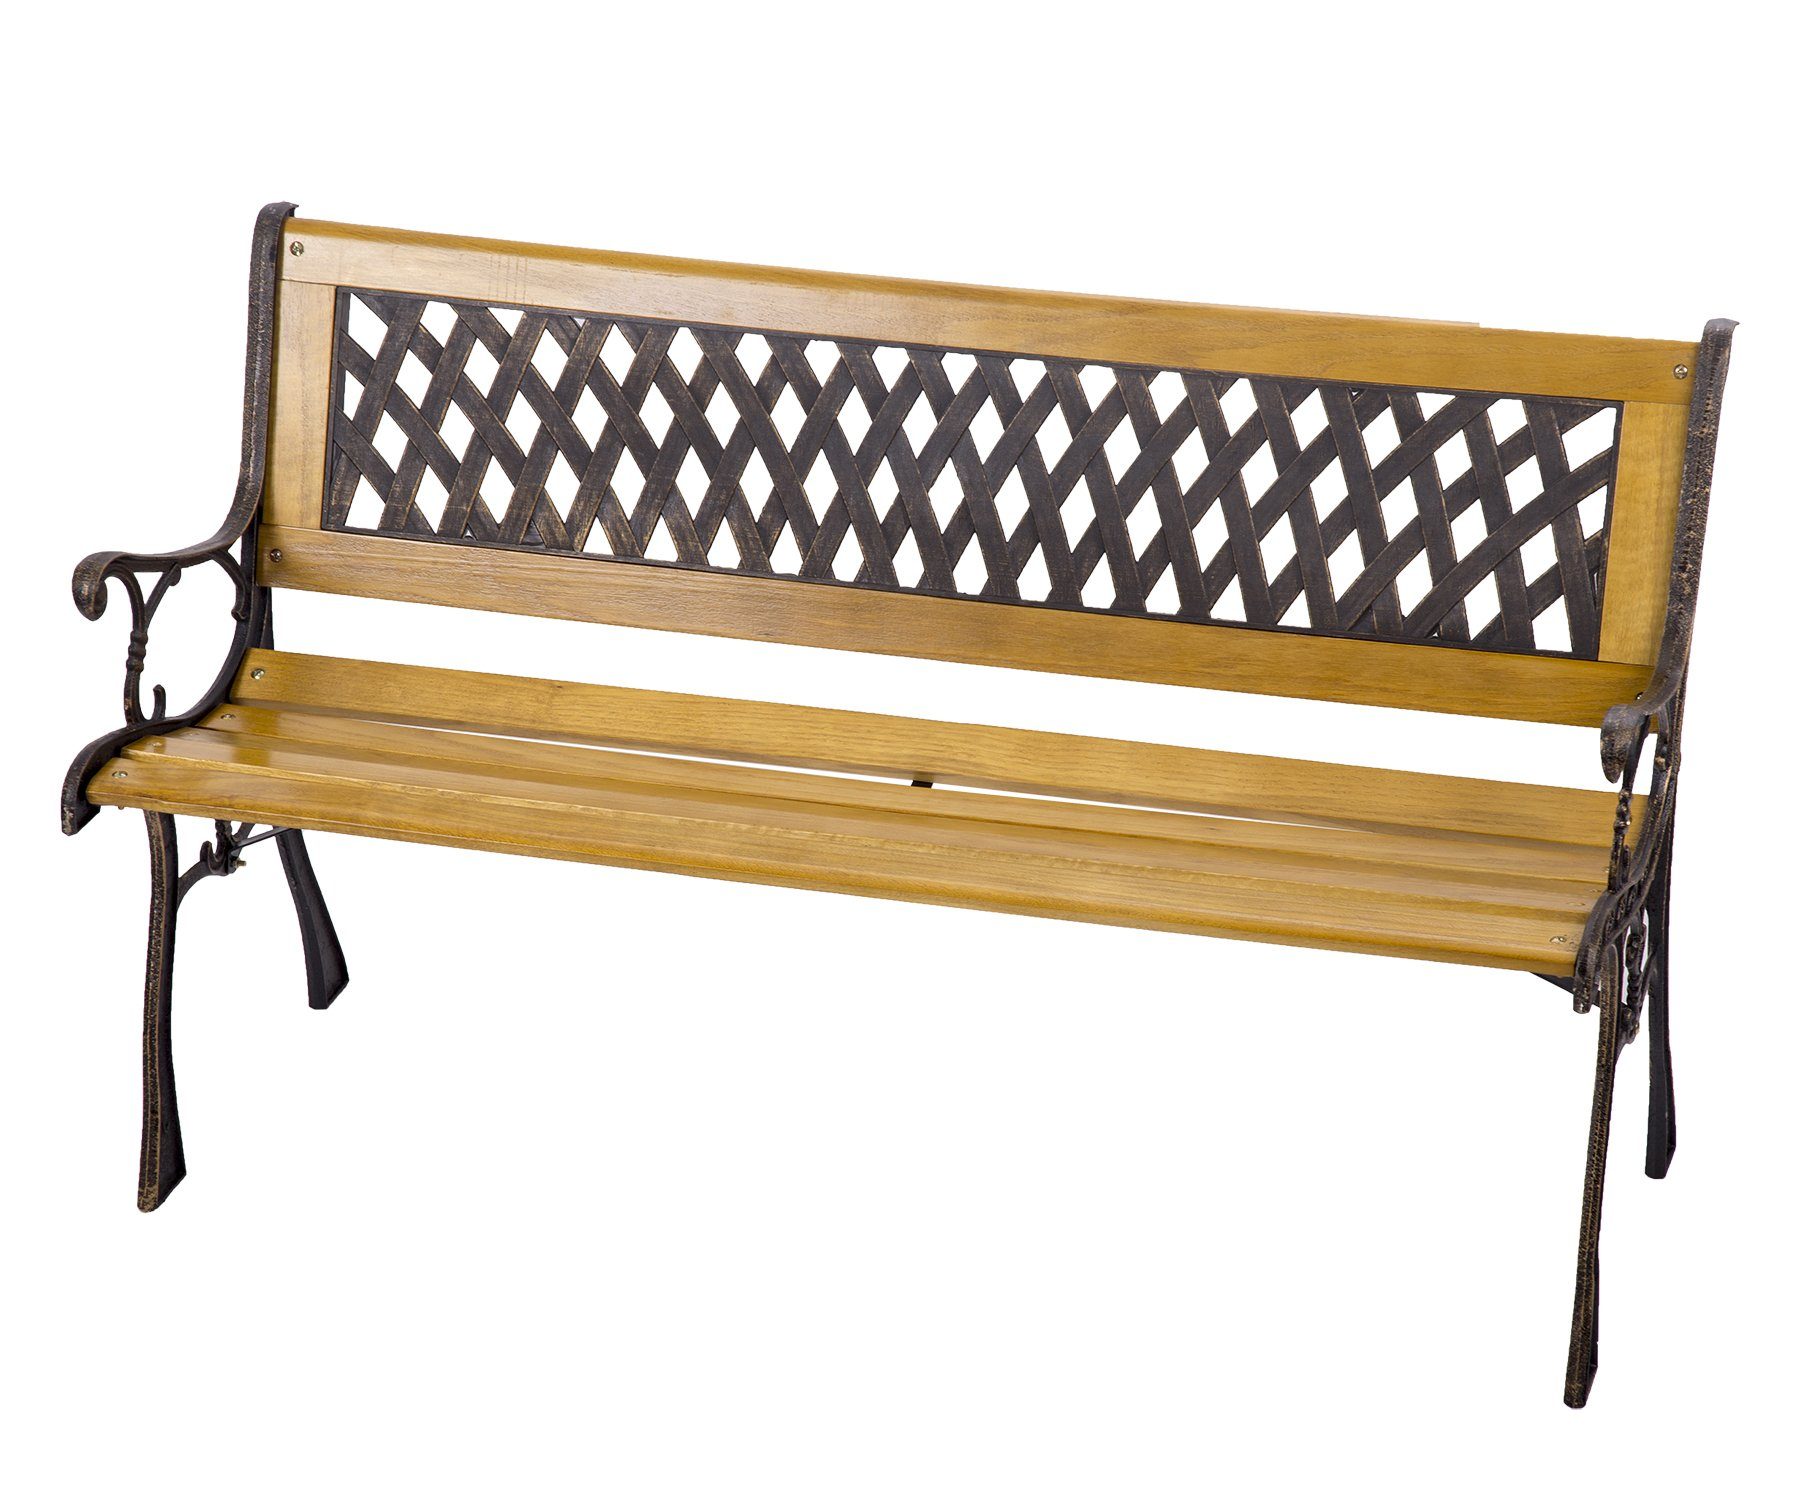 Garden Bench Patio Porch Chair Deck Hardwood Cast Iron Love Seat Best Massage by BMS (Image #3)